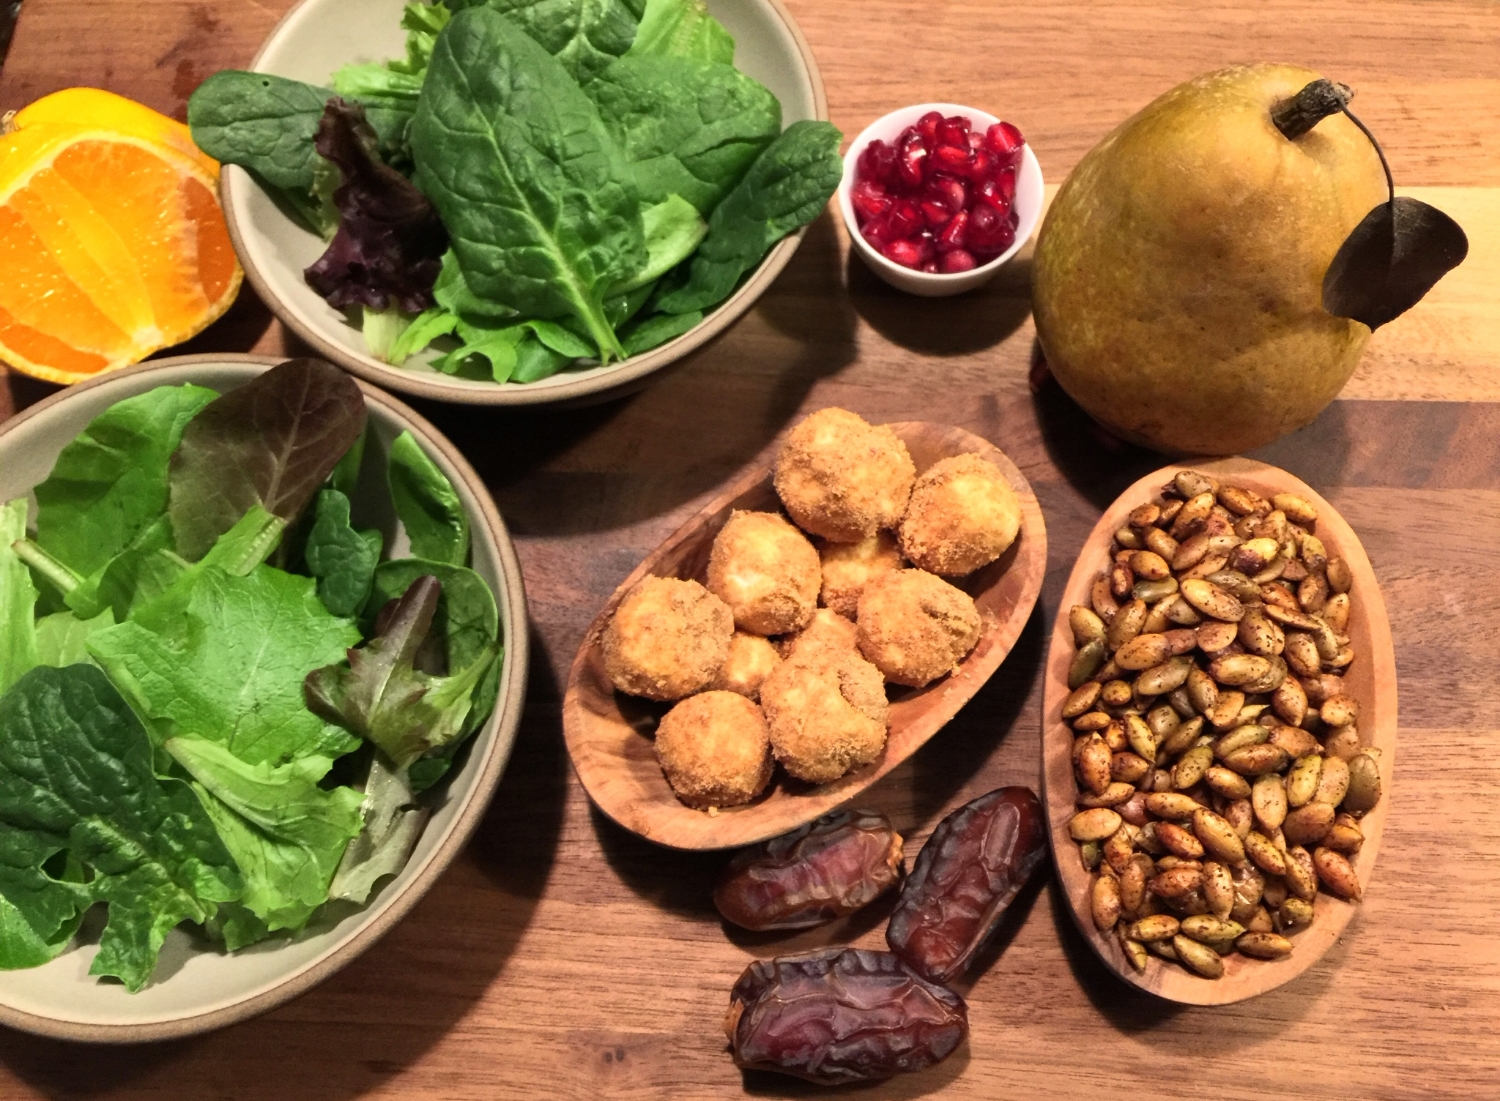 Autumn Pear Salad with Dates, Spiced Pumpkin Seeds, and Pumpkin Pita Goat Cheese Balls with Pumpkin Seed Oil & Mandarin Juice